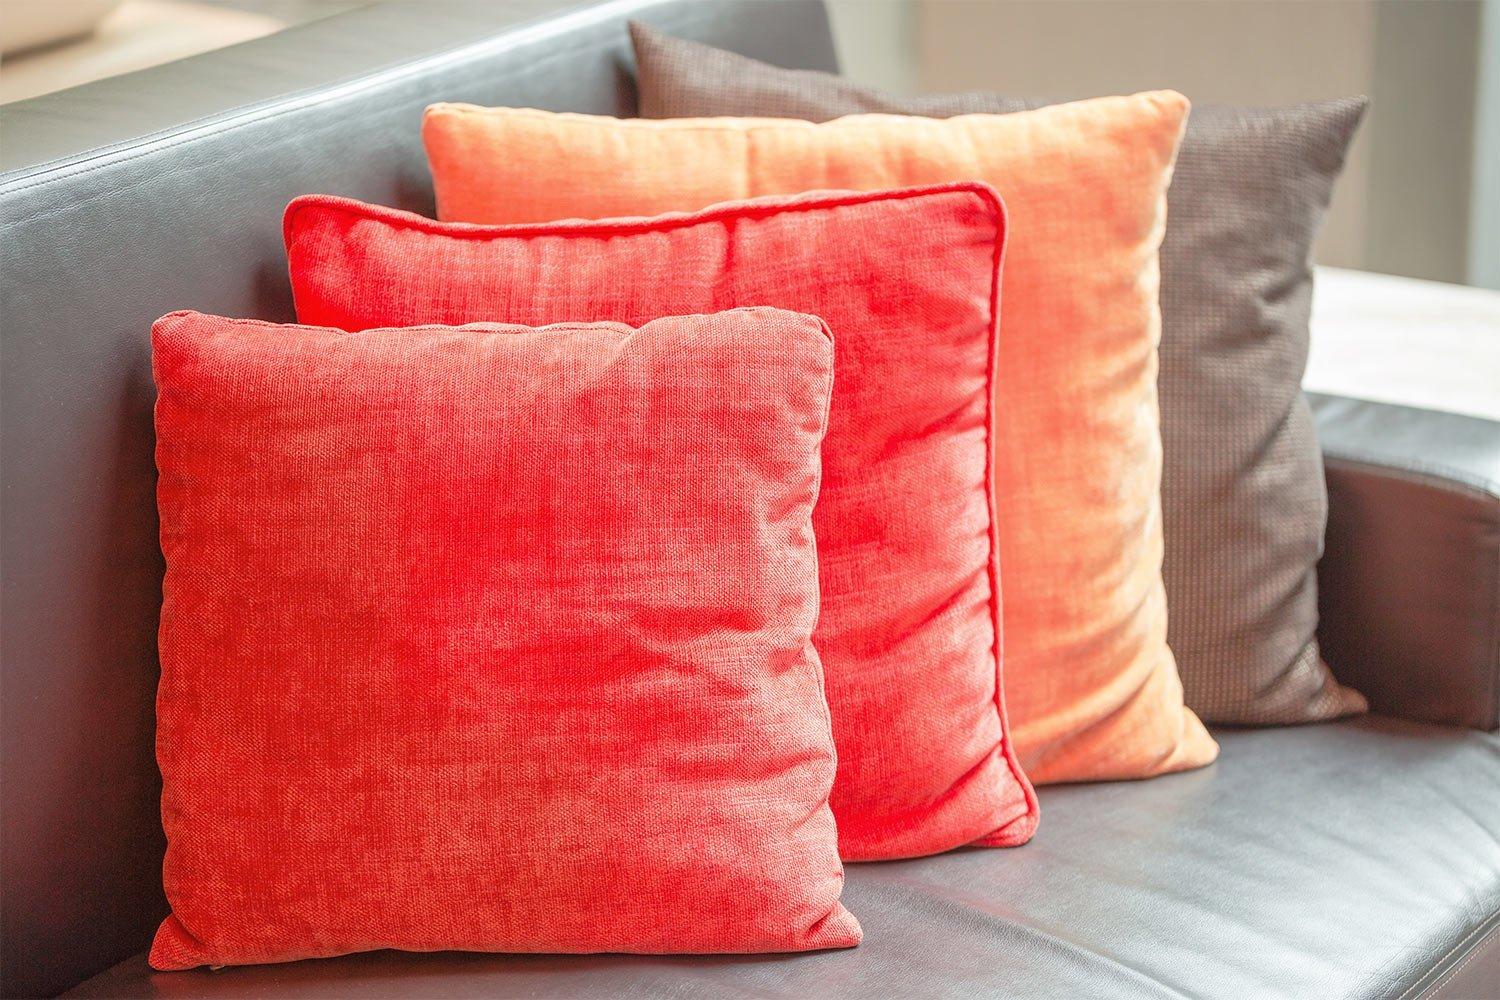 5-decorative_pillows_2.jpg